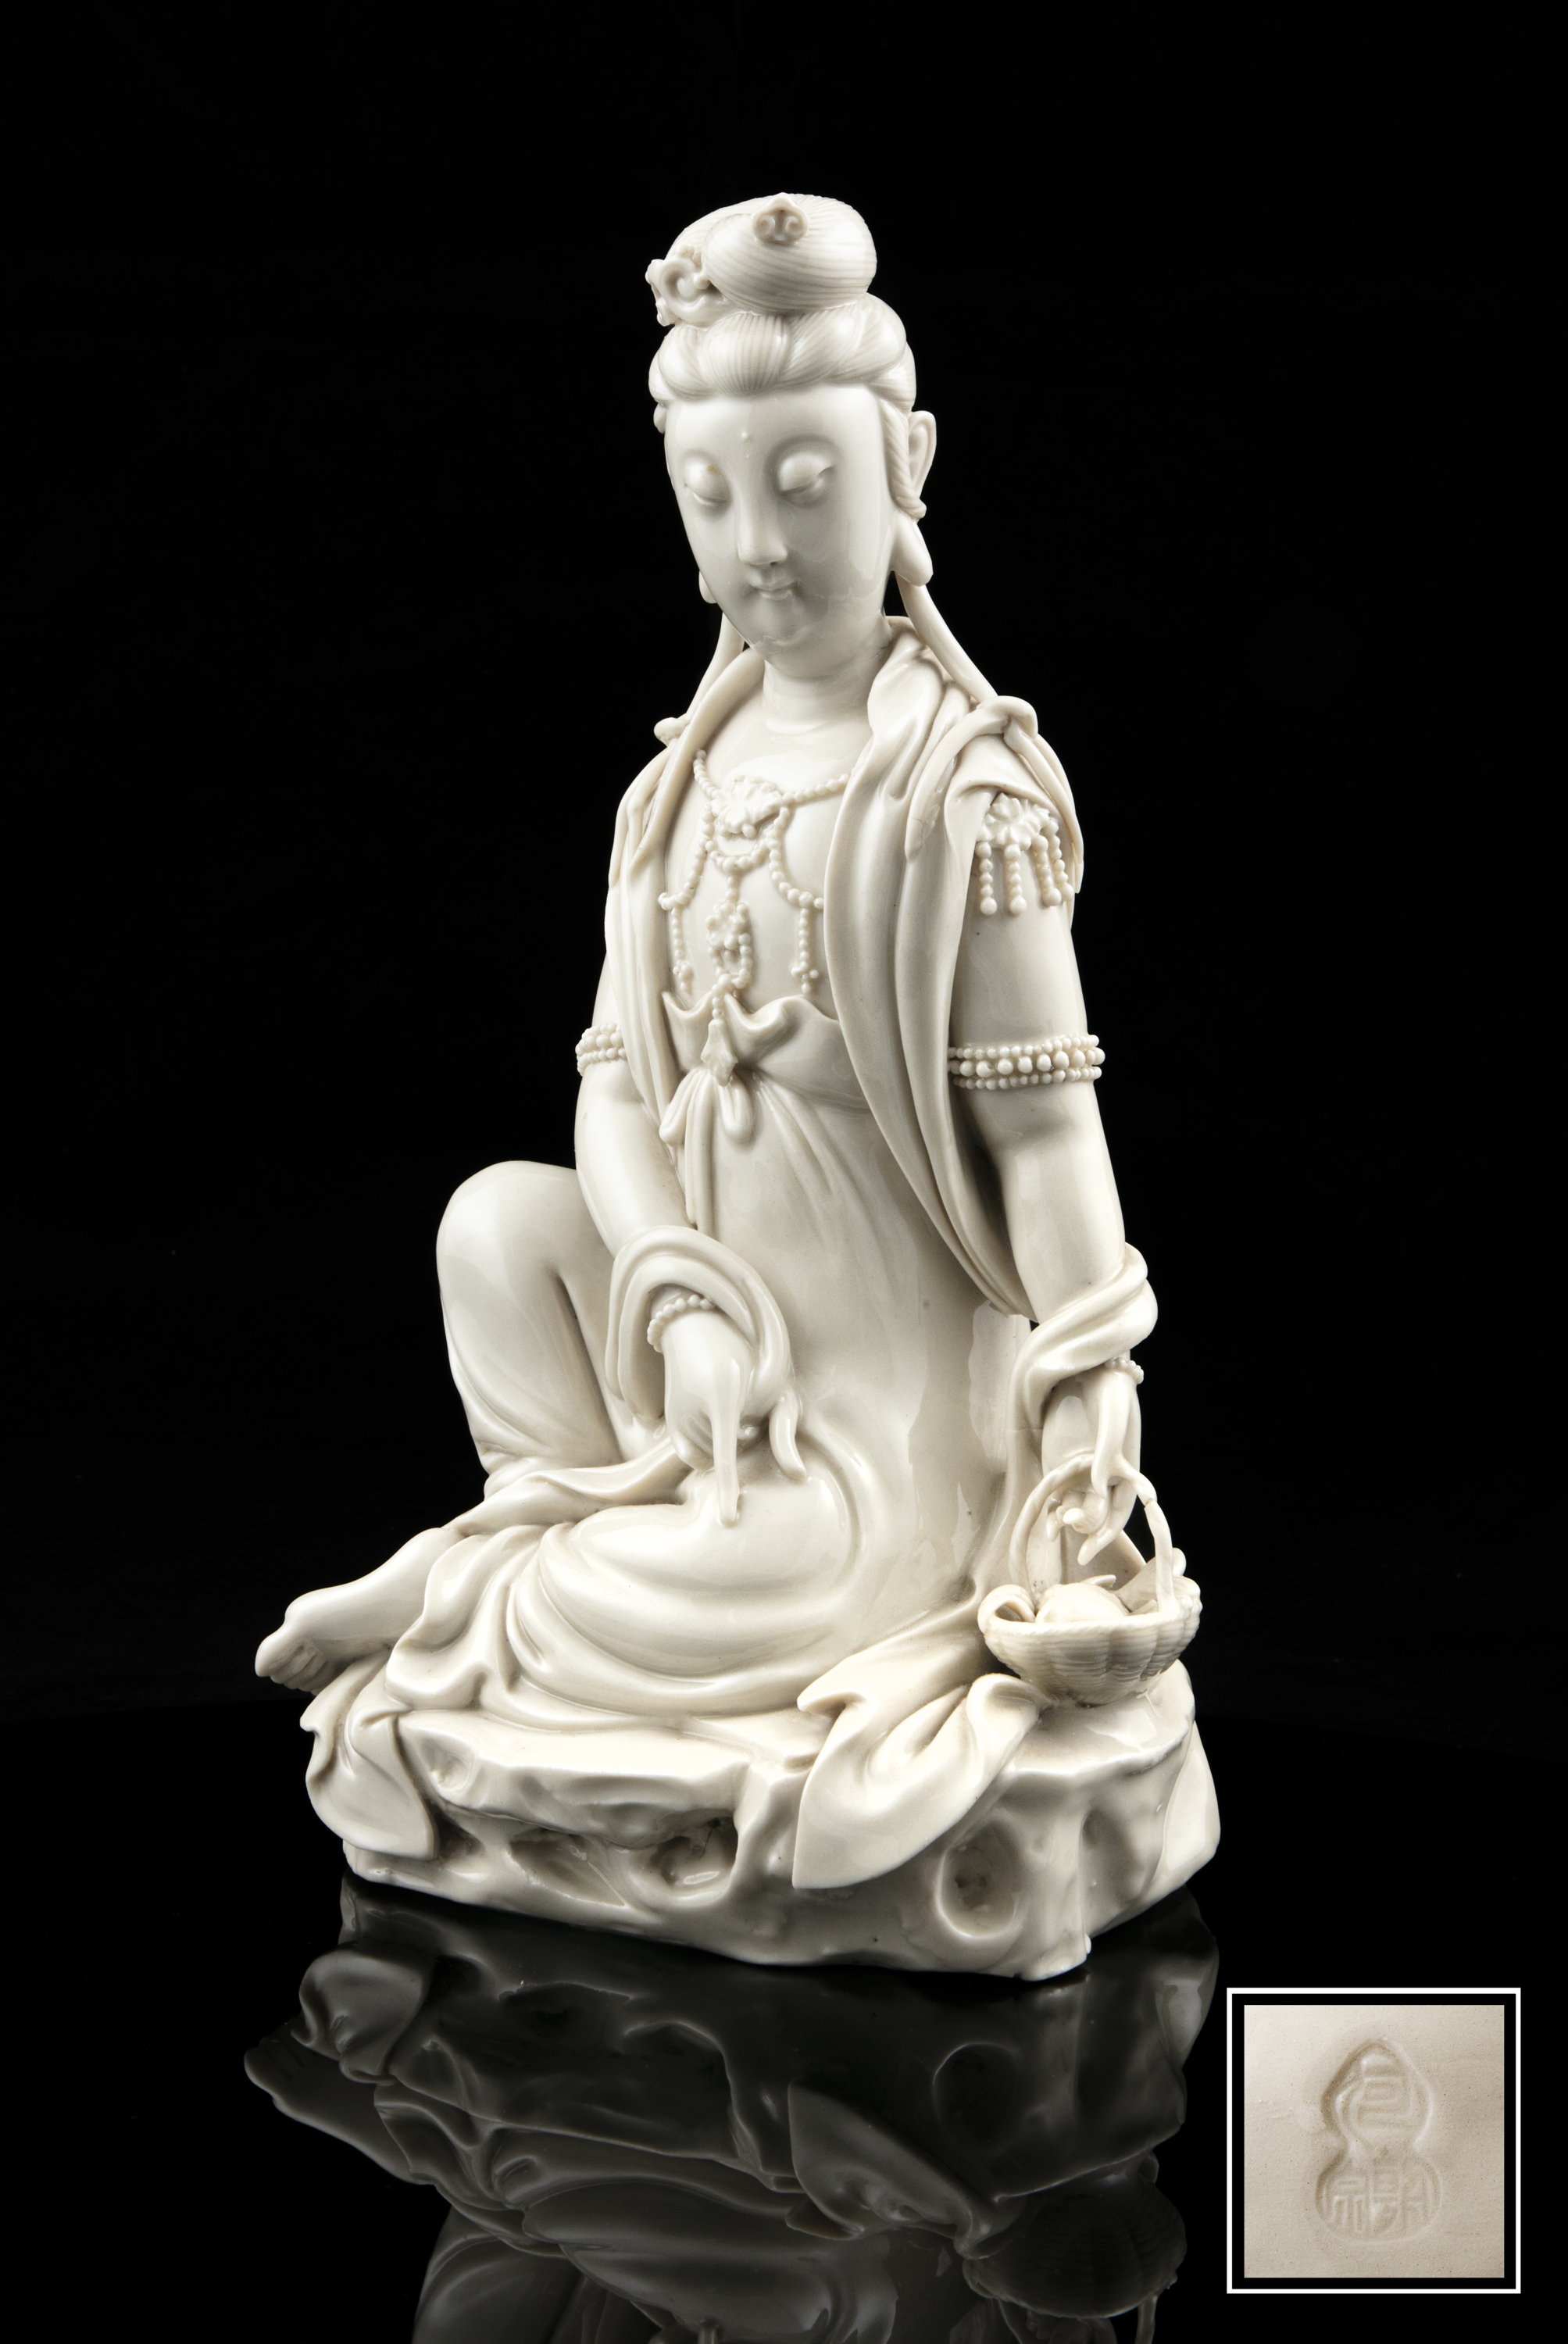 A LARGE DEHUA FIGURE OF A SEATED GUANYIN IMPRESSED WITH A HE CHAOZONG 何朝宗 CALABASH SHAPED SEAL - Image 2 of 48